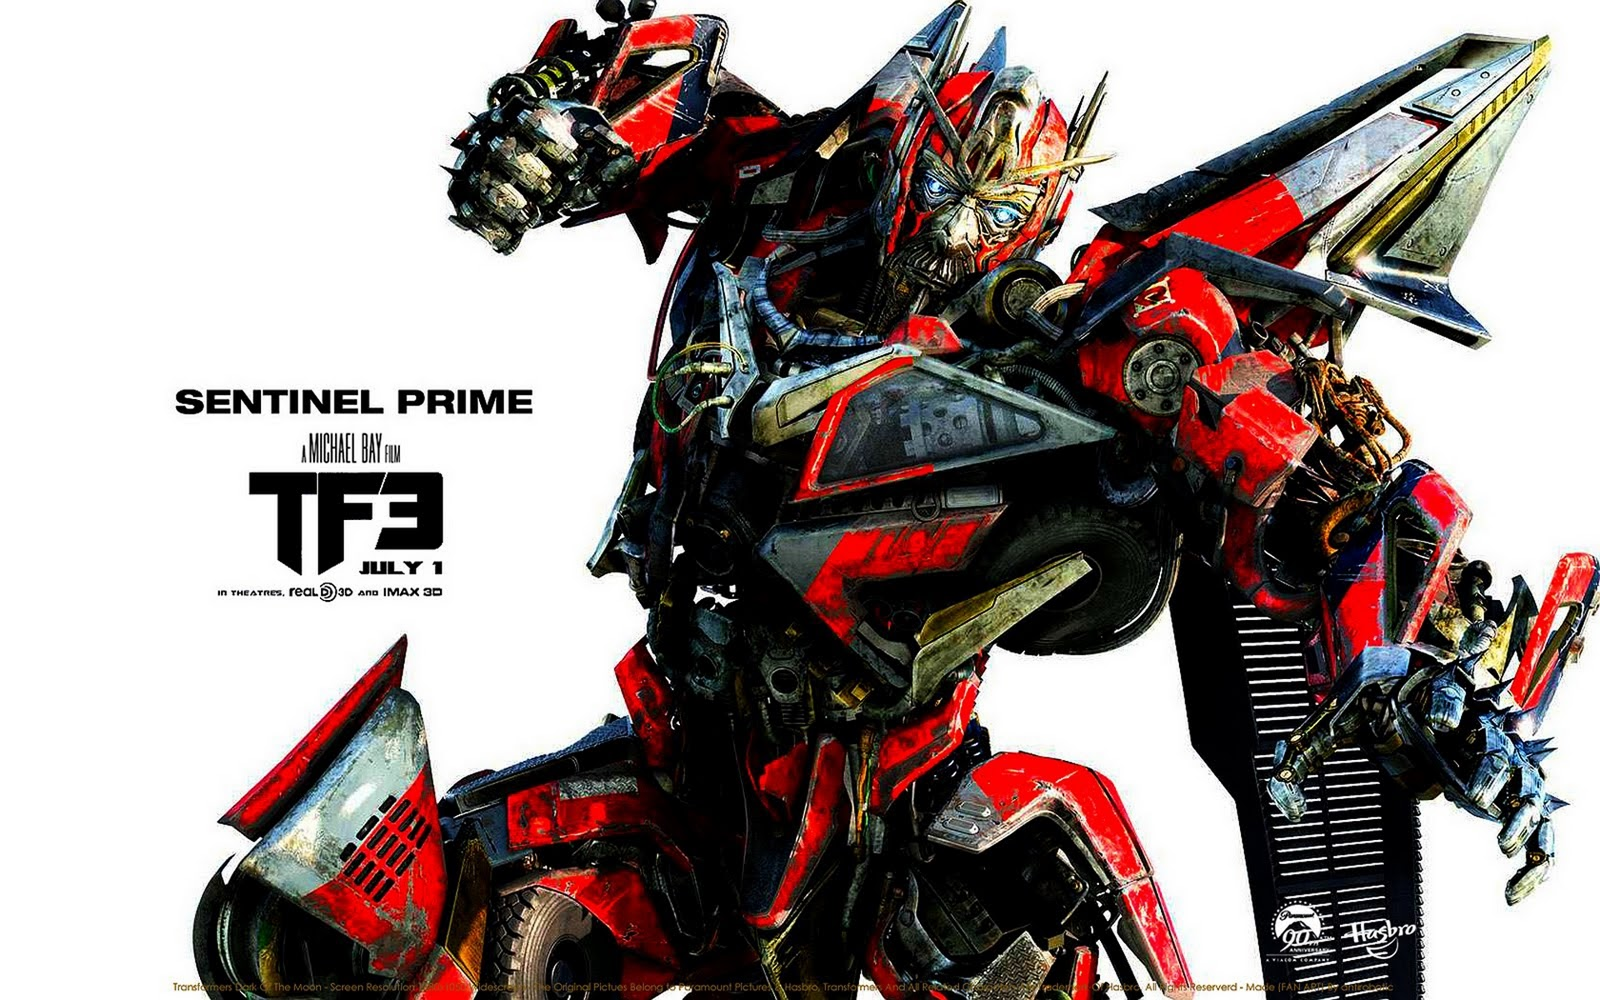 sentinel-prime-wallpaper - Bing images